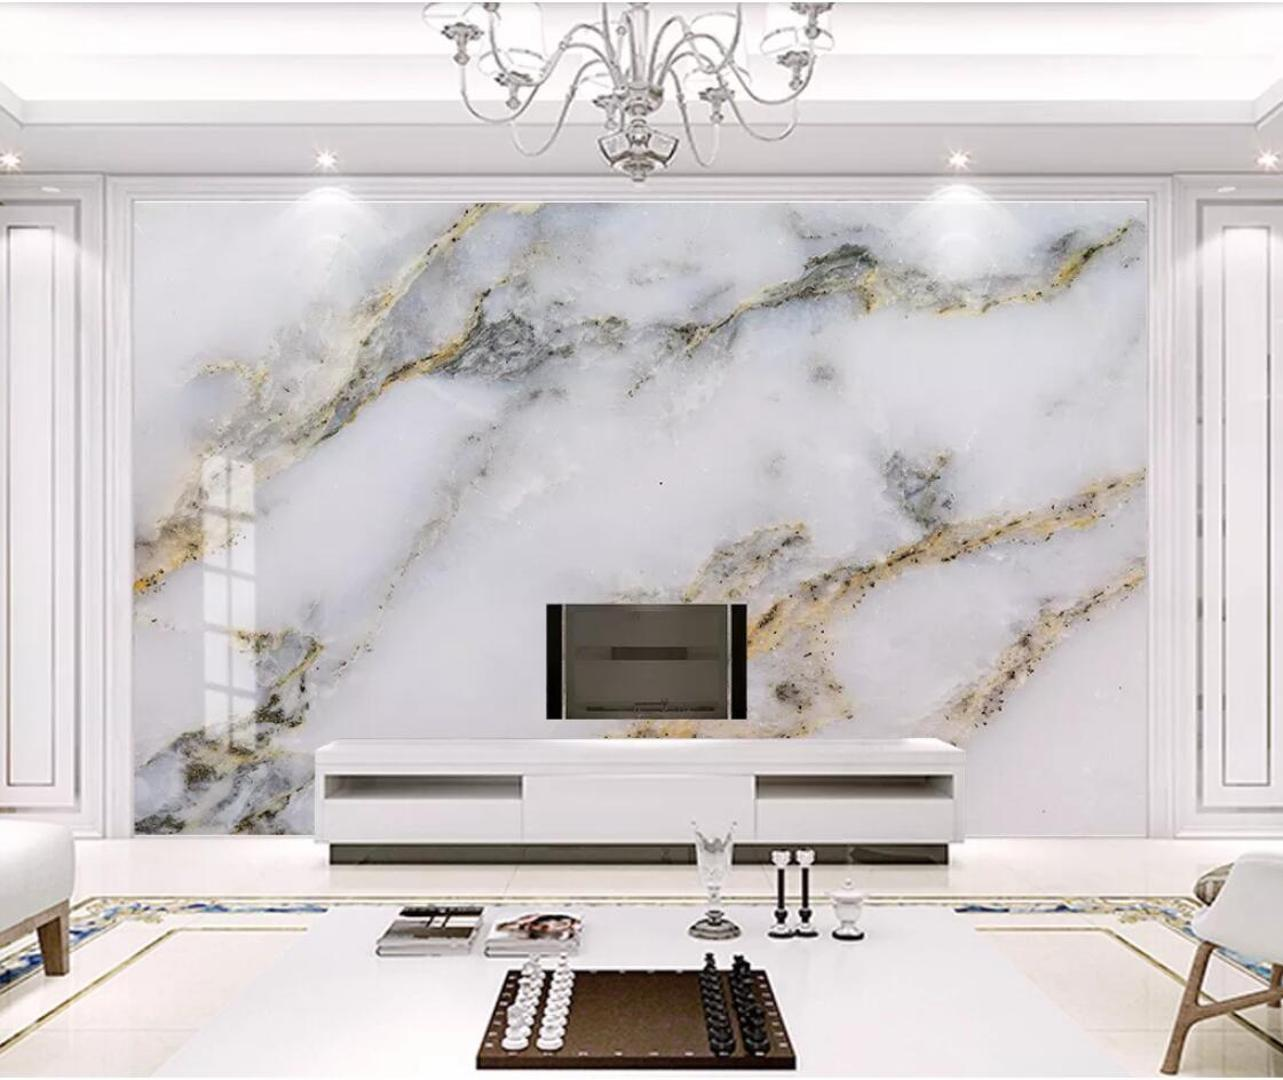 Modern White Marble Wallpaper 3d Wall Mural For Tv Background Wall Decor Gold Luxury Murals Photo Printed Paper For Bedroom Hd Hd Wallpapers Hd High Quality Wallpapers From Nice 03 39 37 Dhgate Com